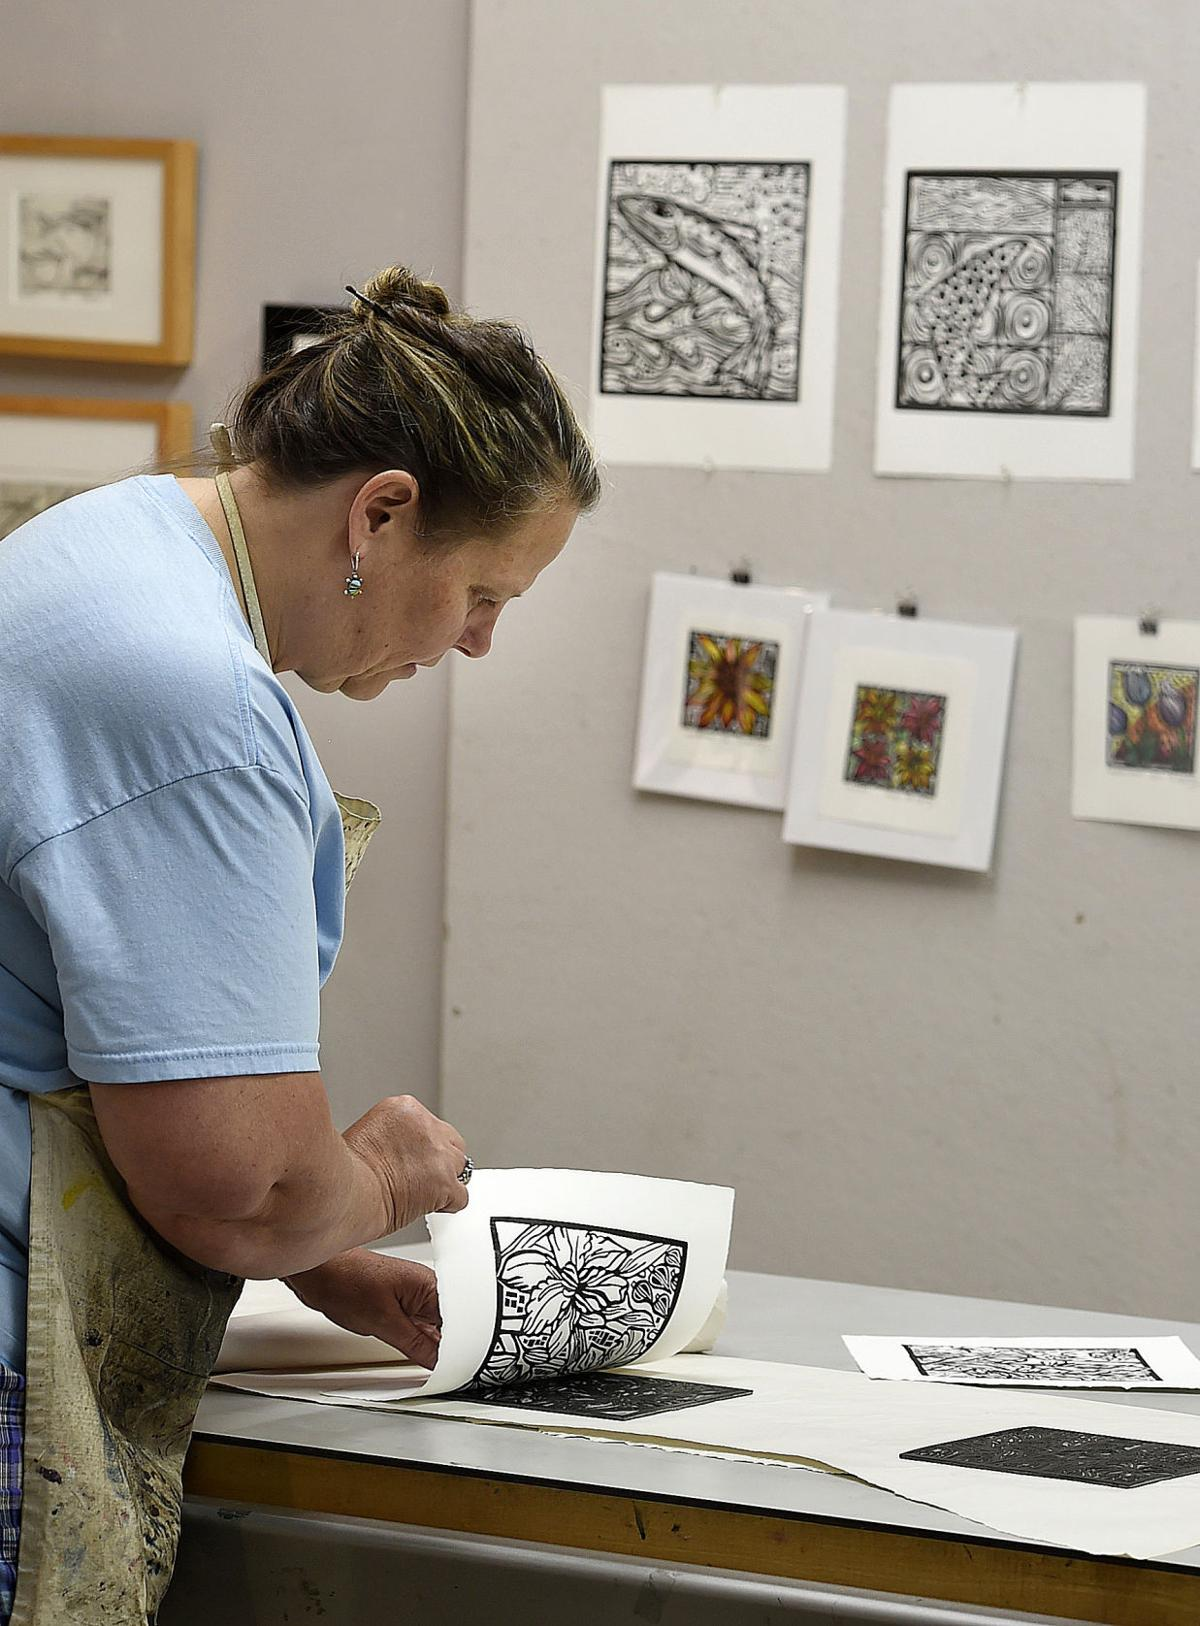 Colorado Springs artists offer advice to turn a paintbrush into a profitable business